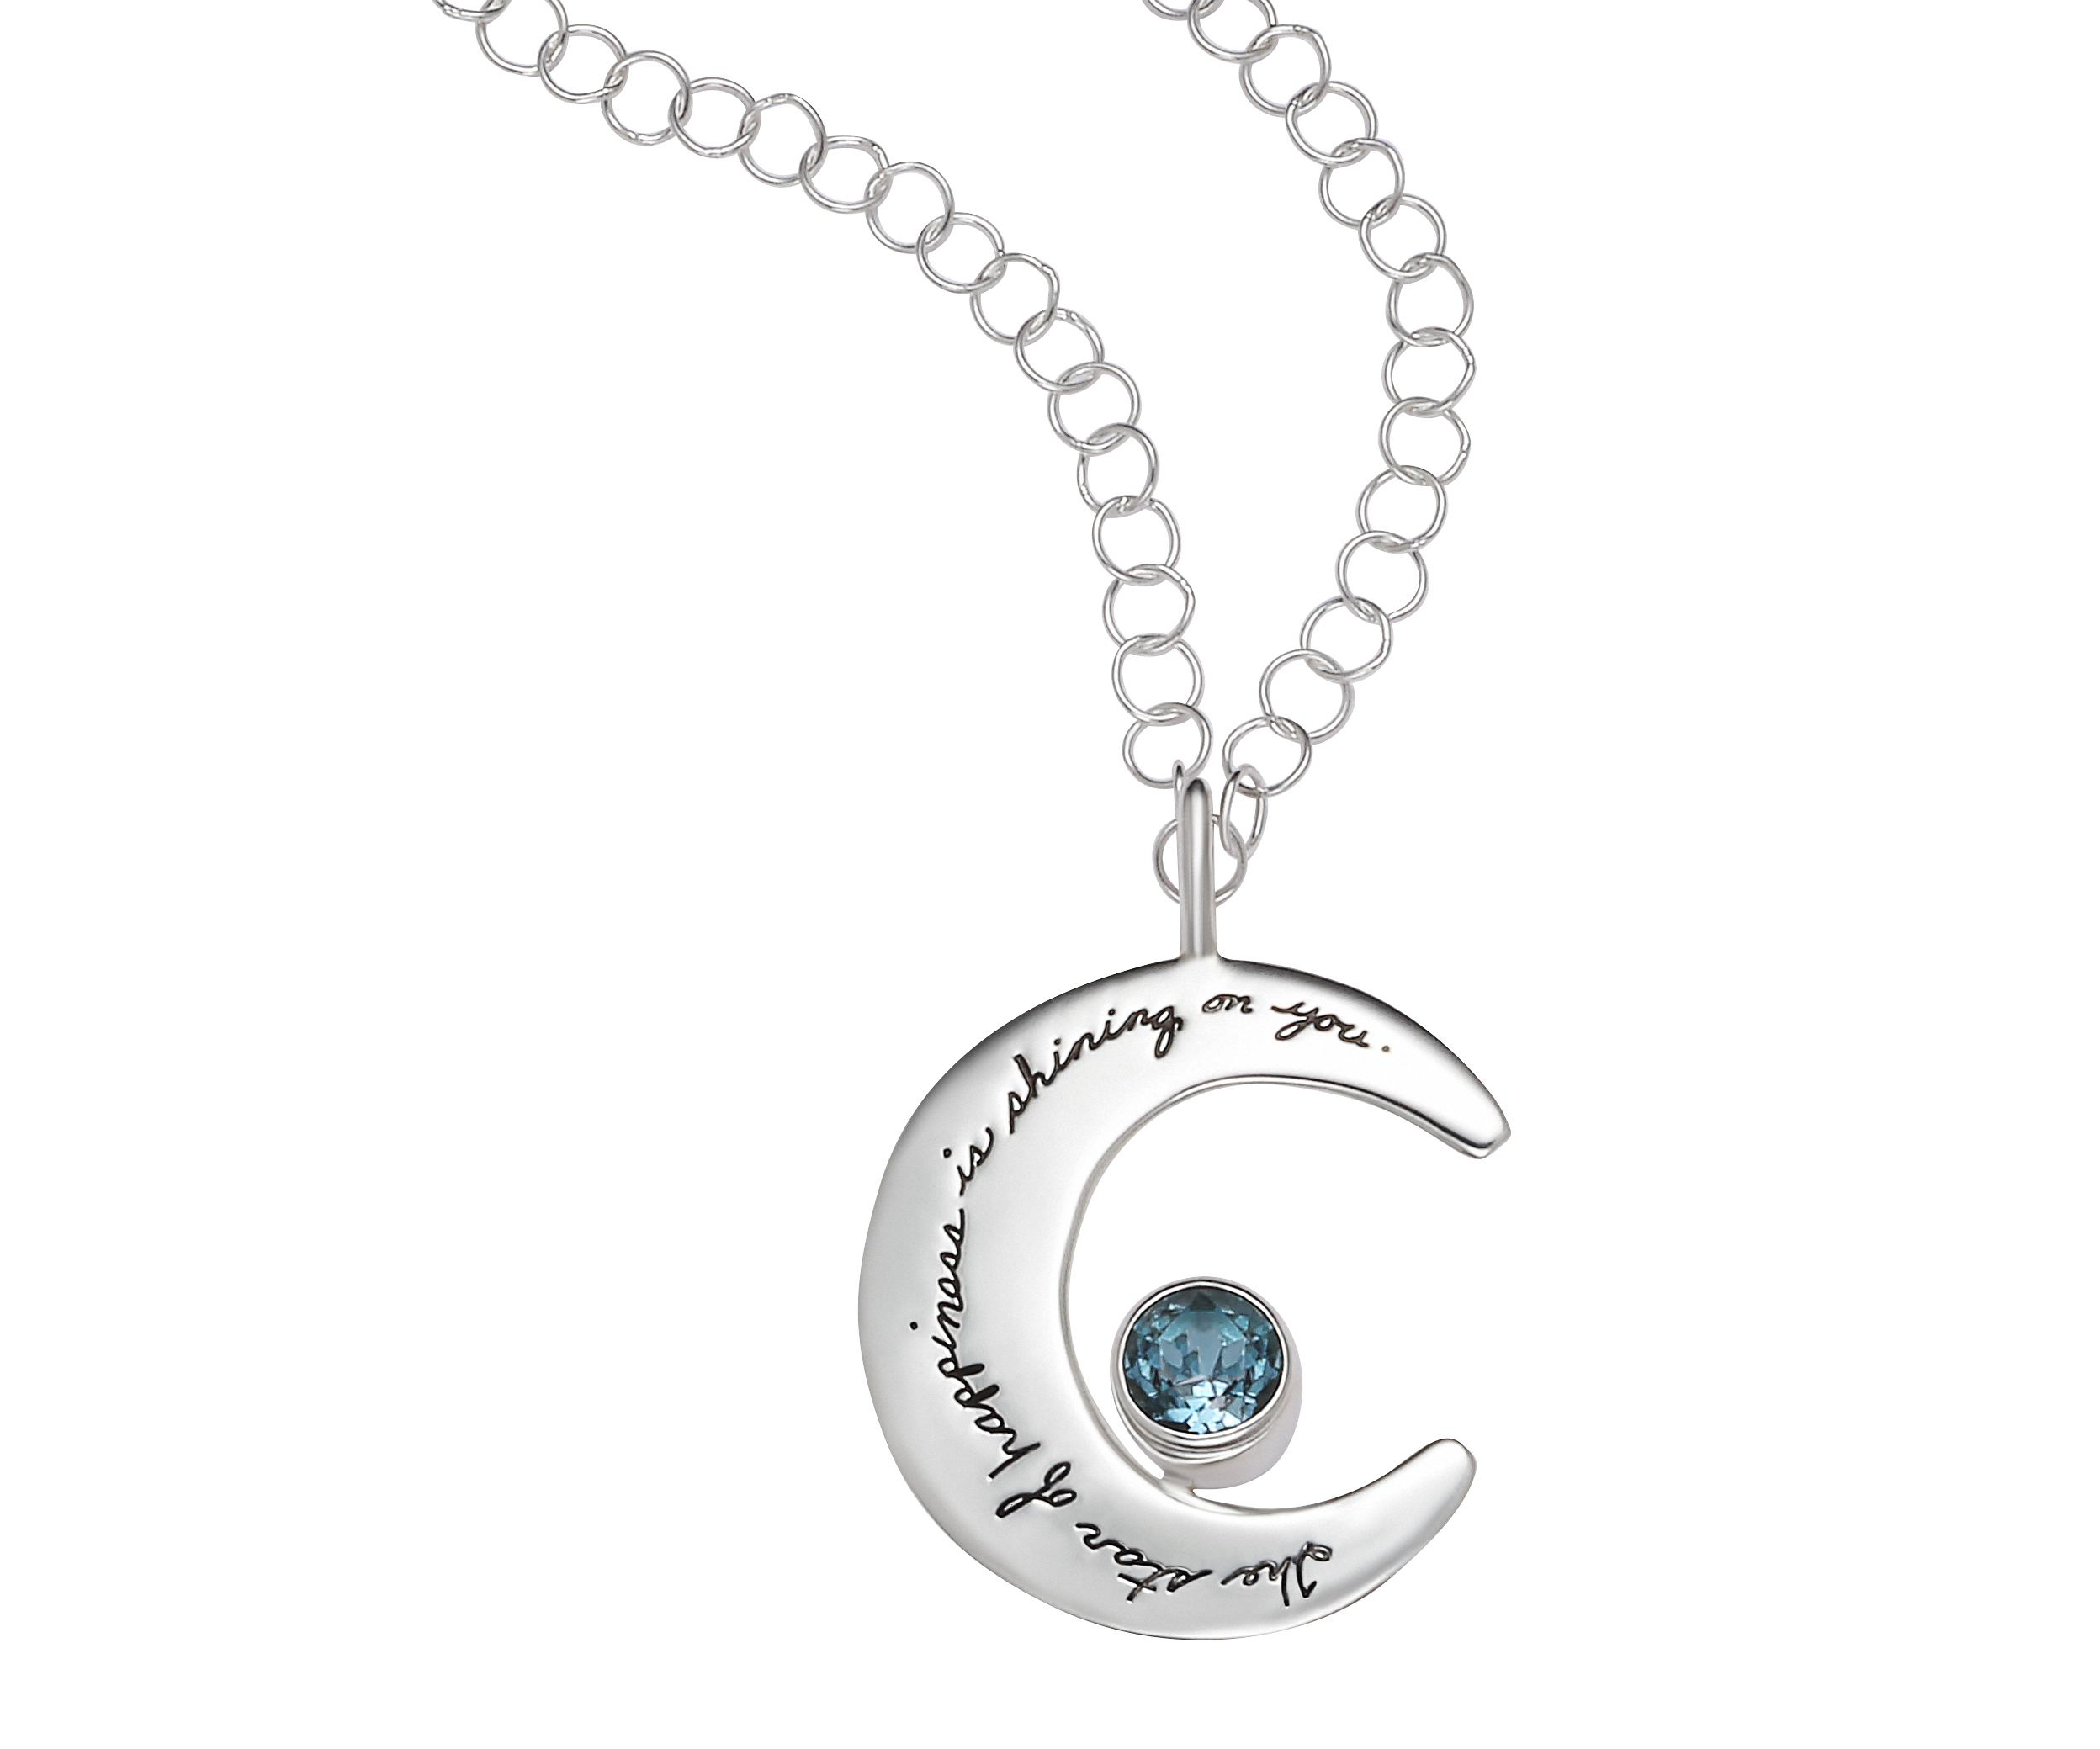 Happiness moon pendant inspirational sterling silver moon shaped necklace 6mm round blue topaz attached engraved quote the star mozeypictures Choice Image